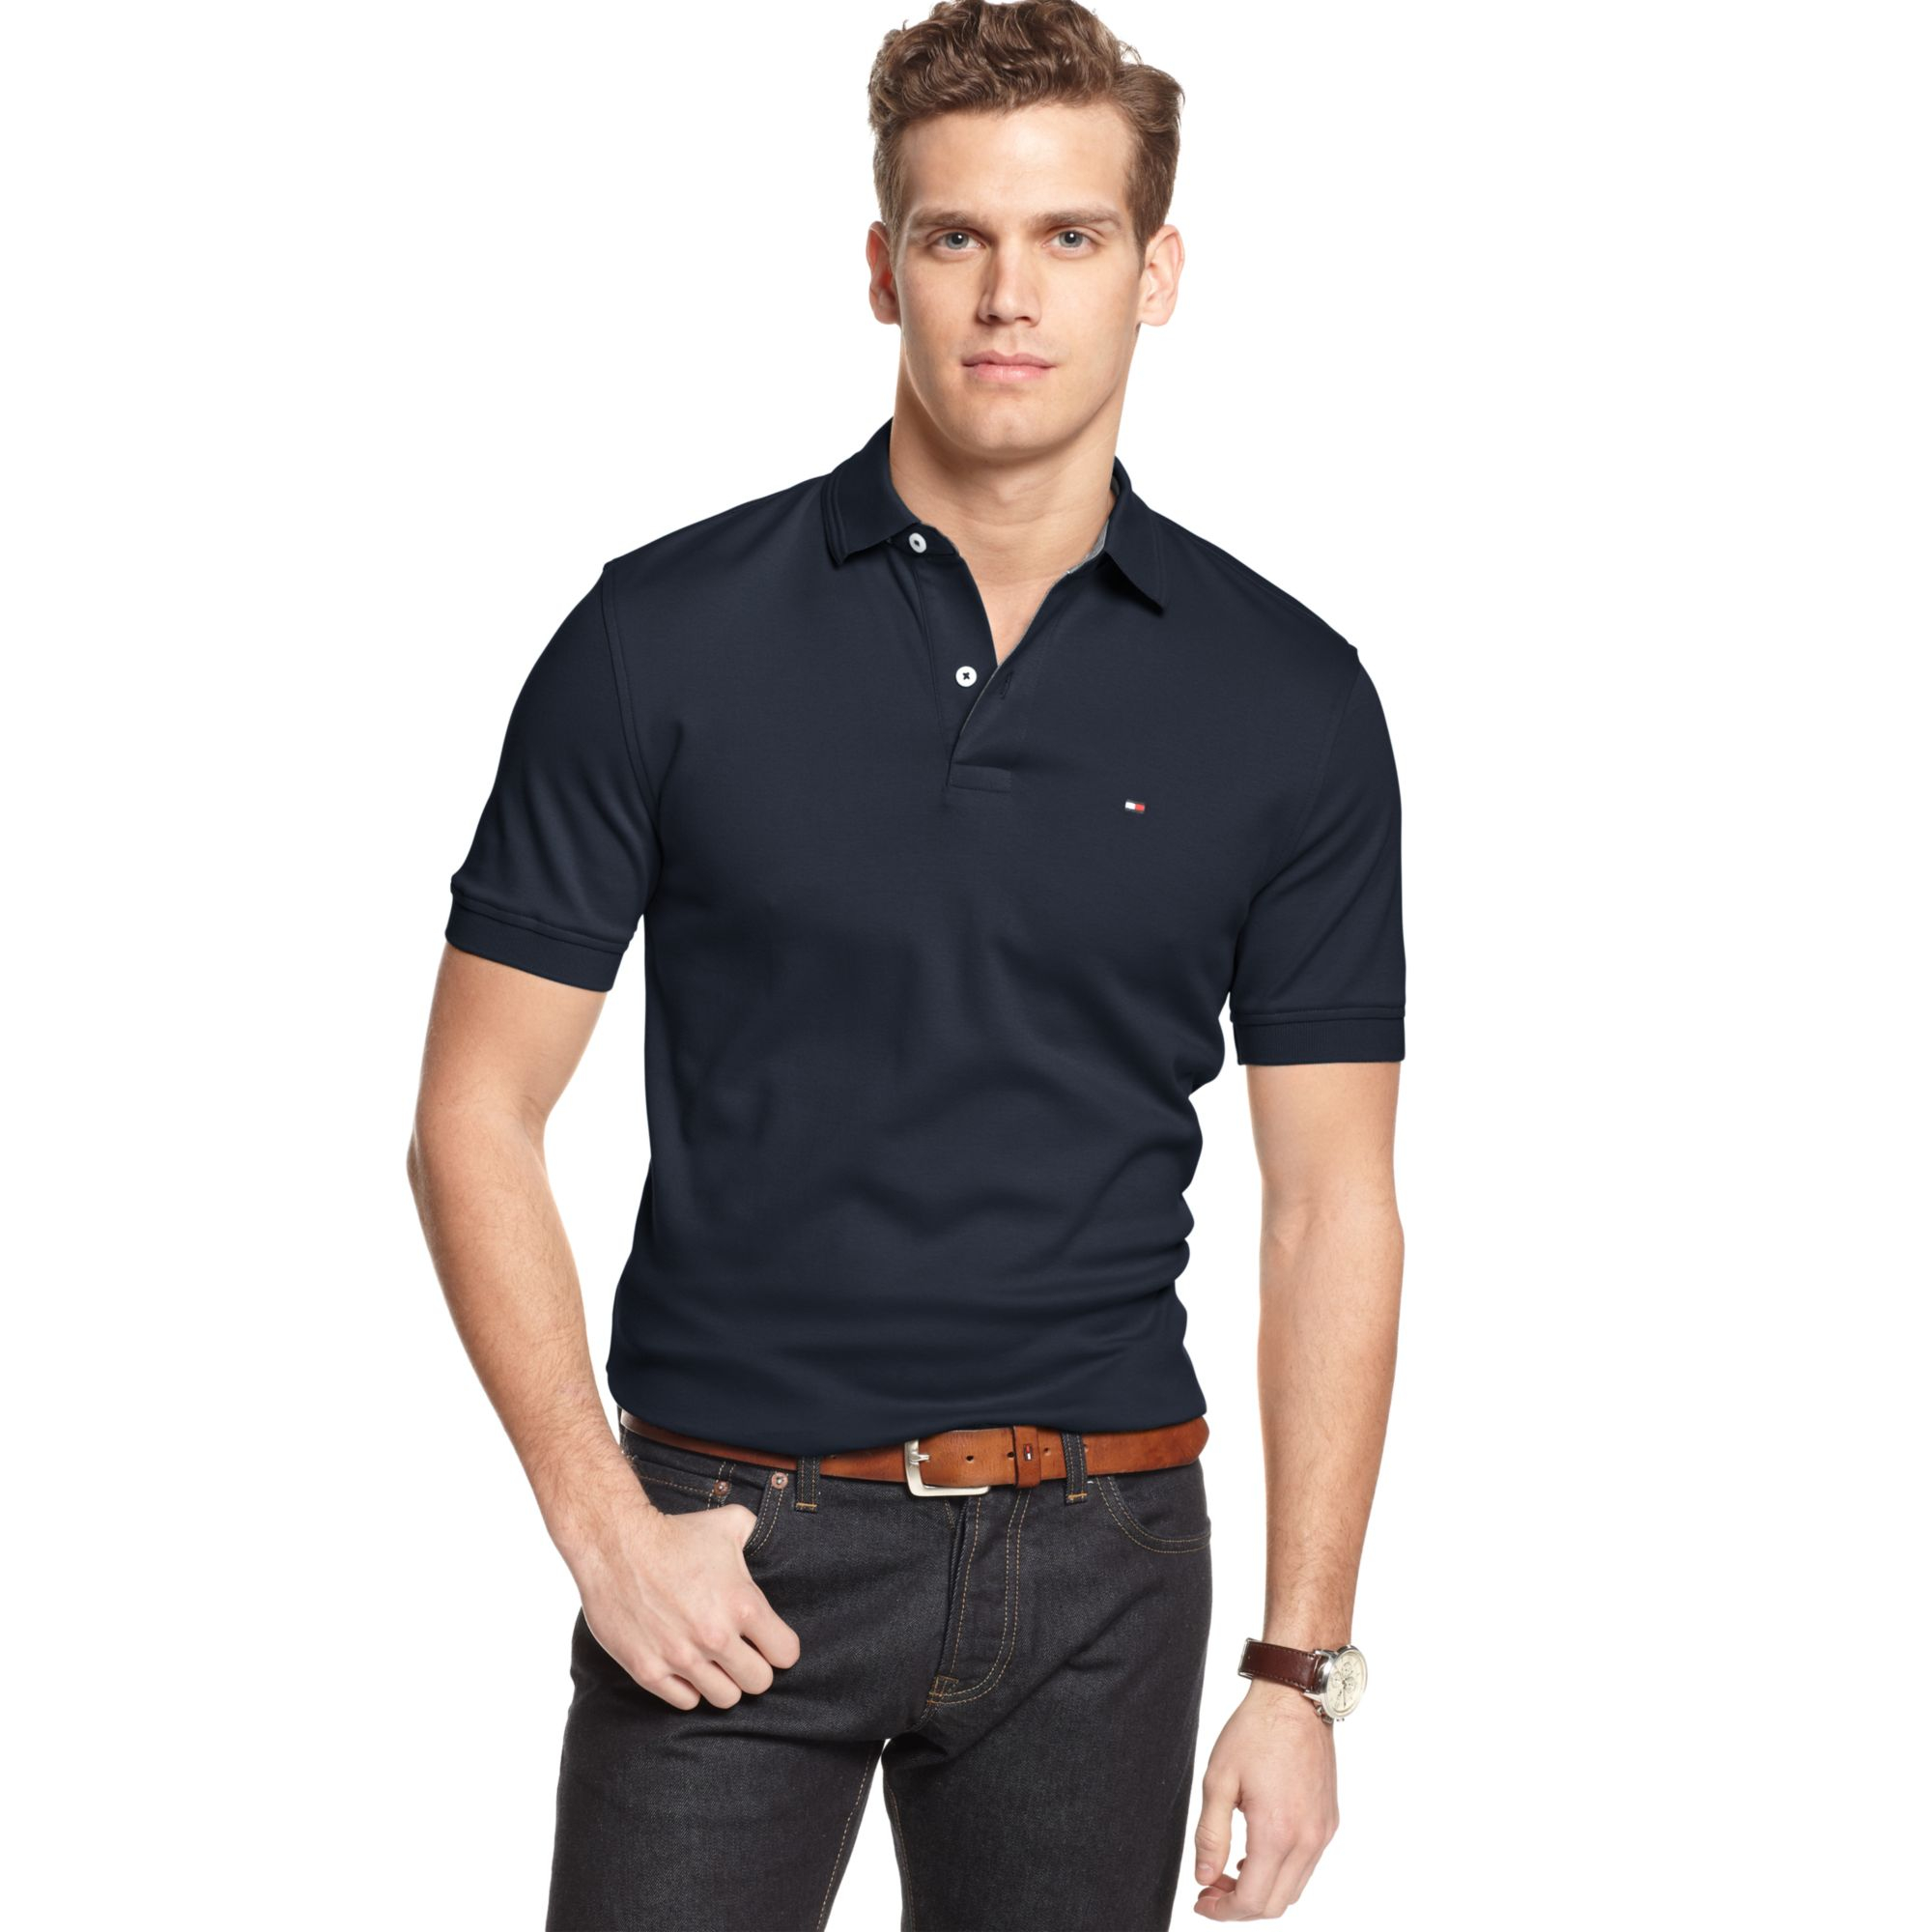 tommy hilfiger jacob polo shirt in blue for men navy blazer lyst. Black Bedroom Furniture Sets. Home Design Ideas